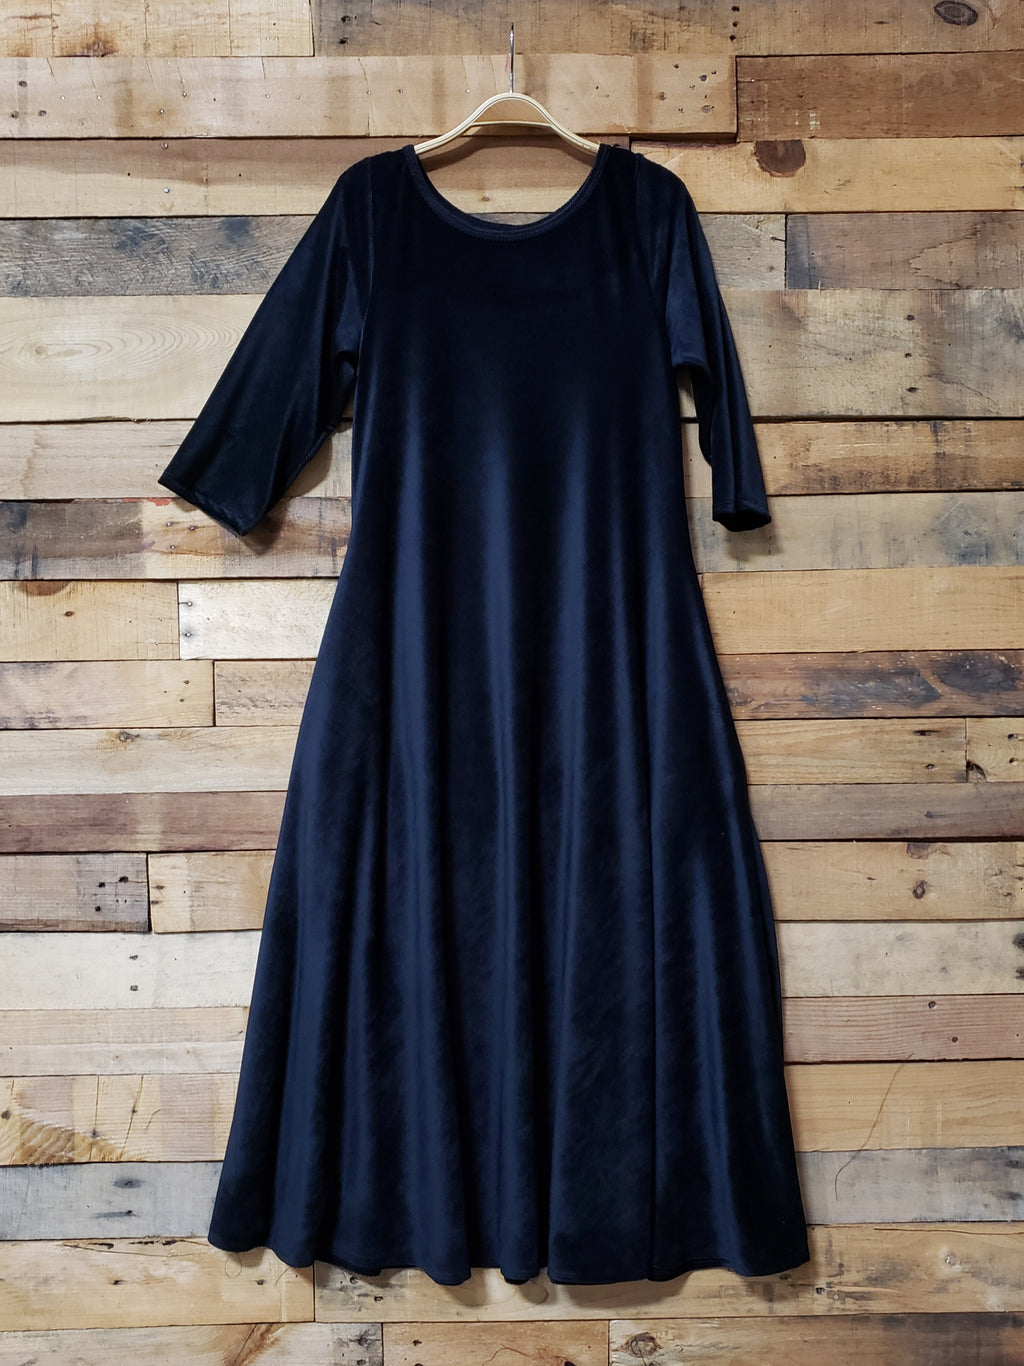 Dallas Swing Dress - Black